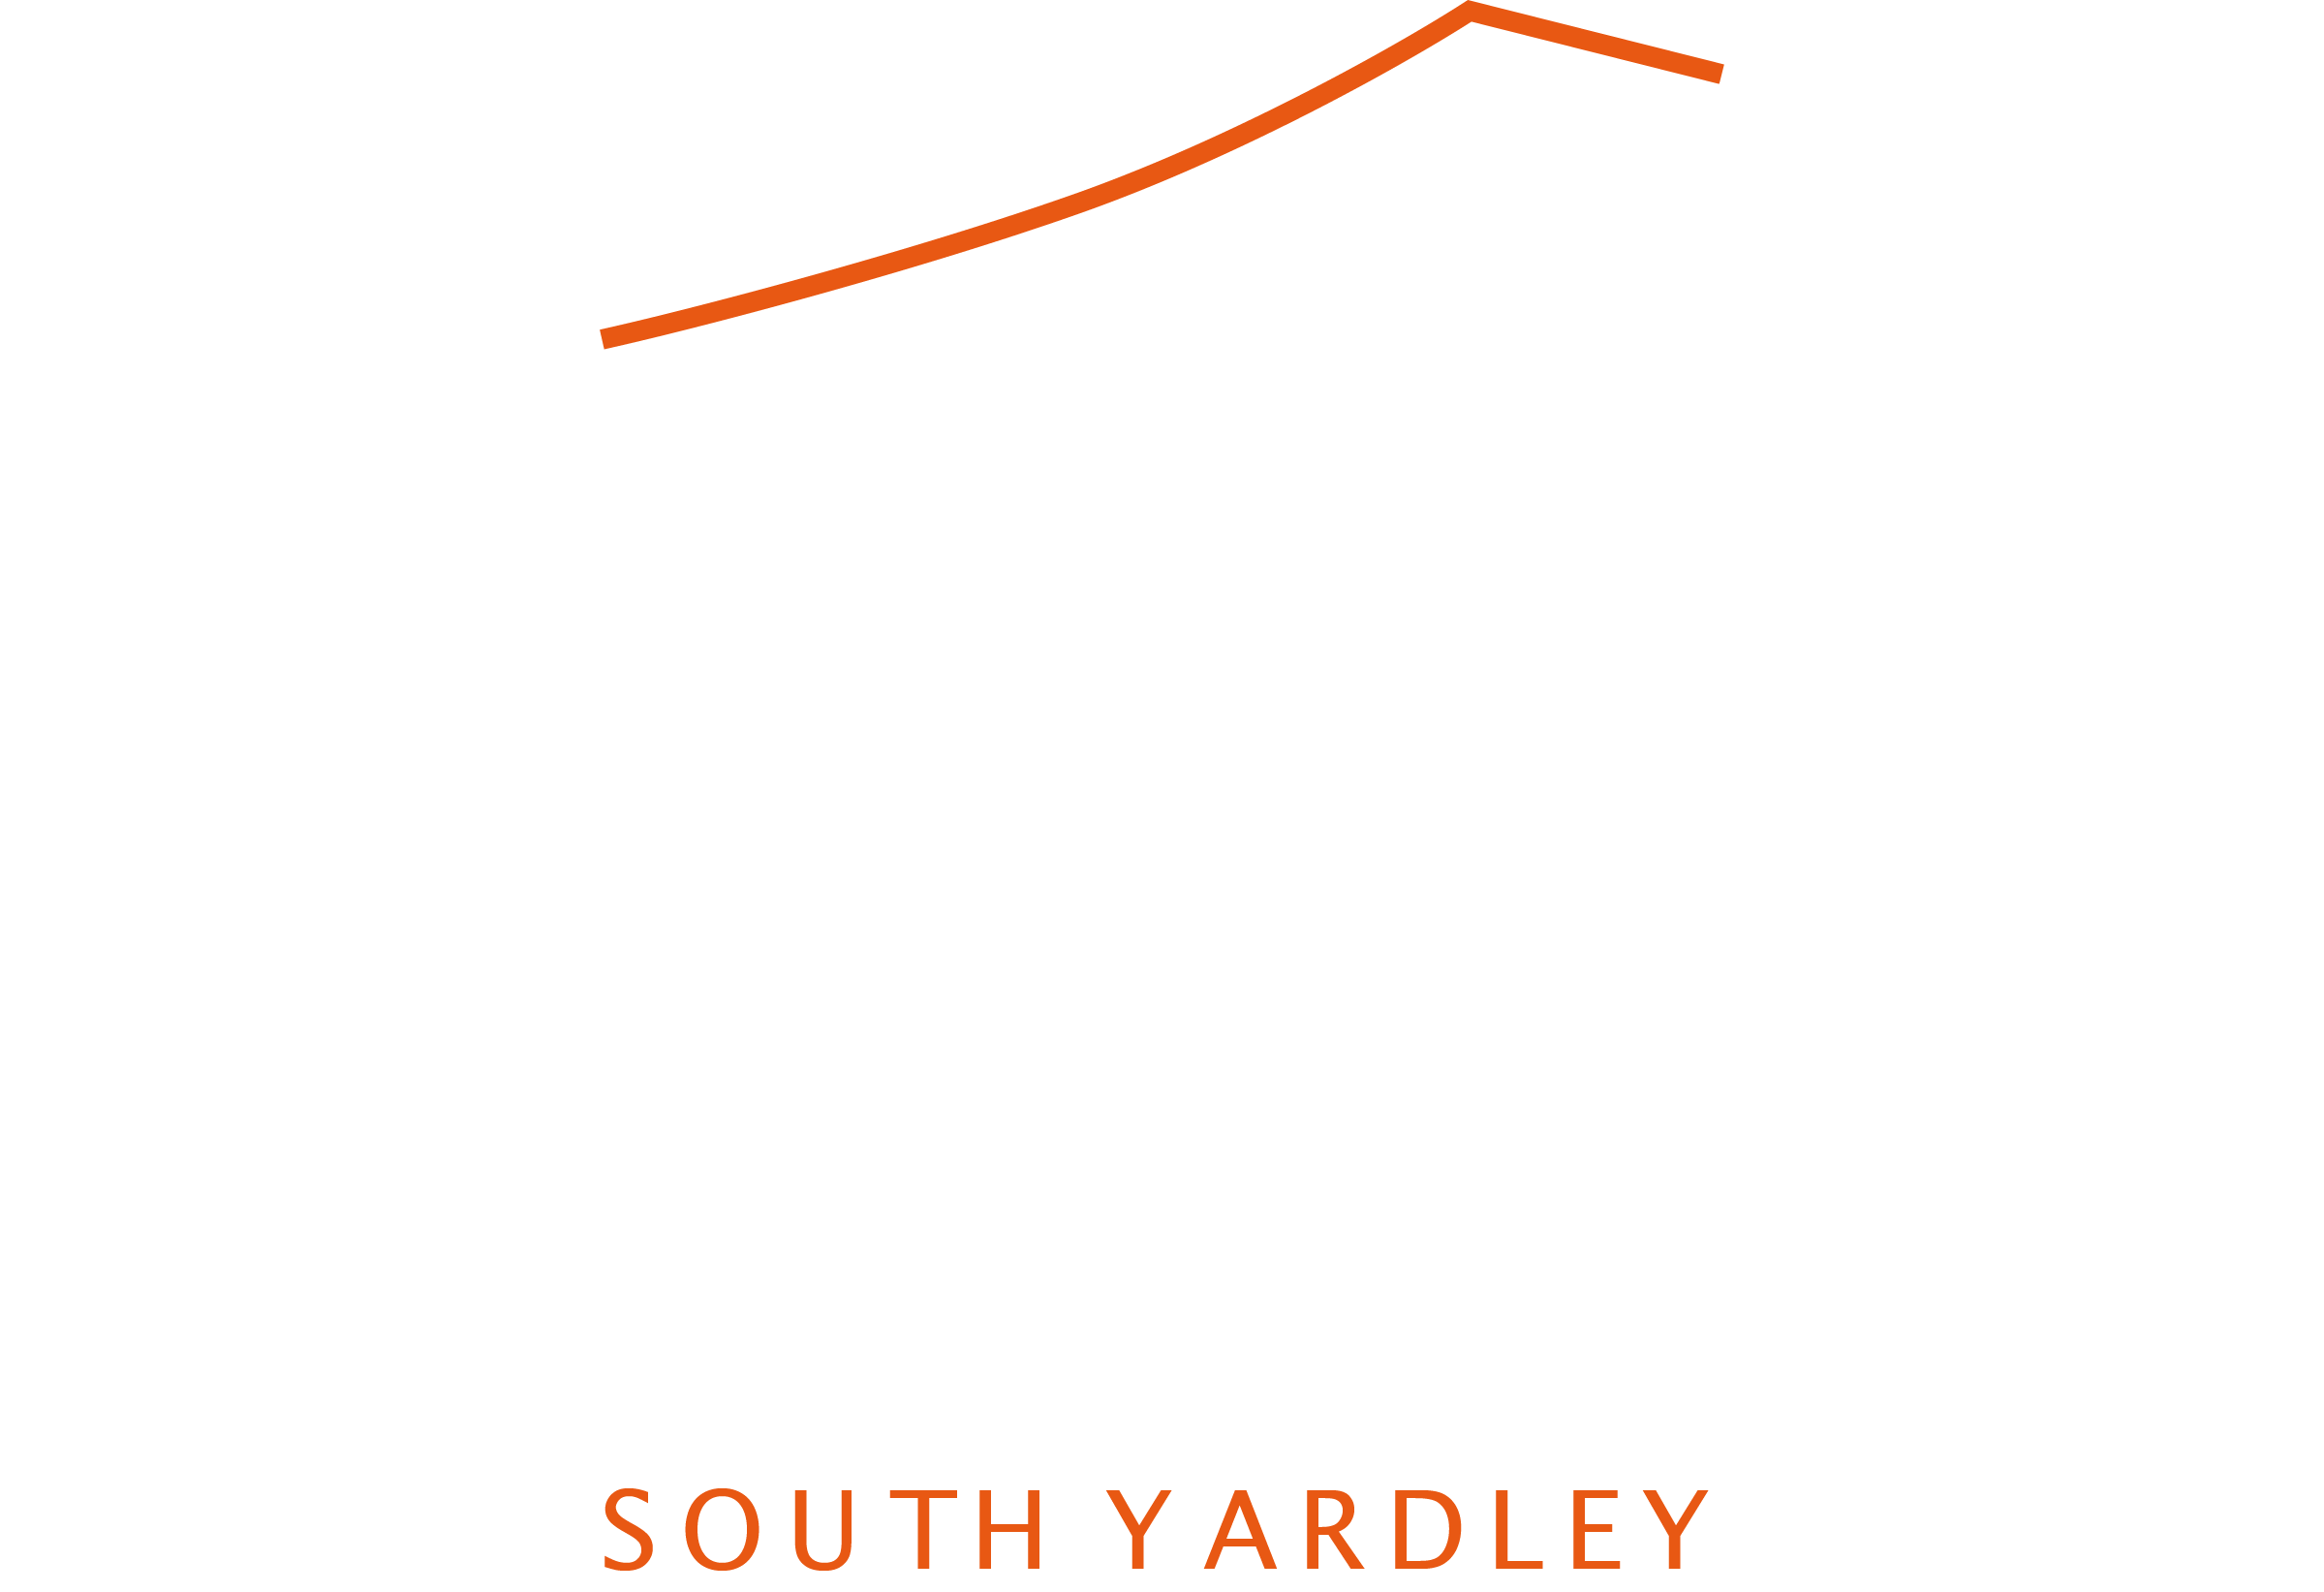 Equipoint, South Yardley